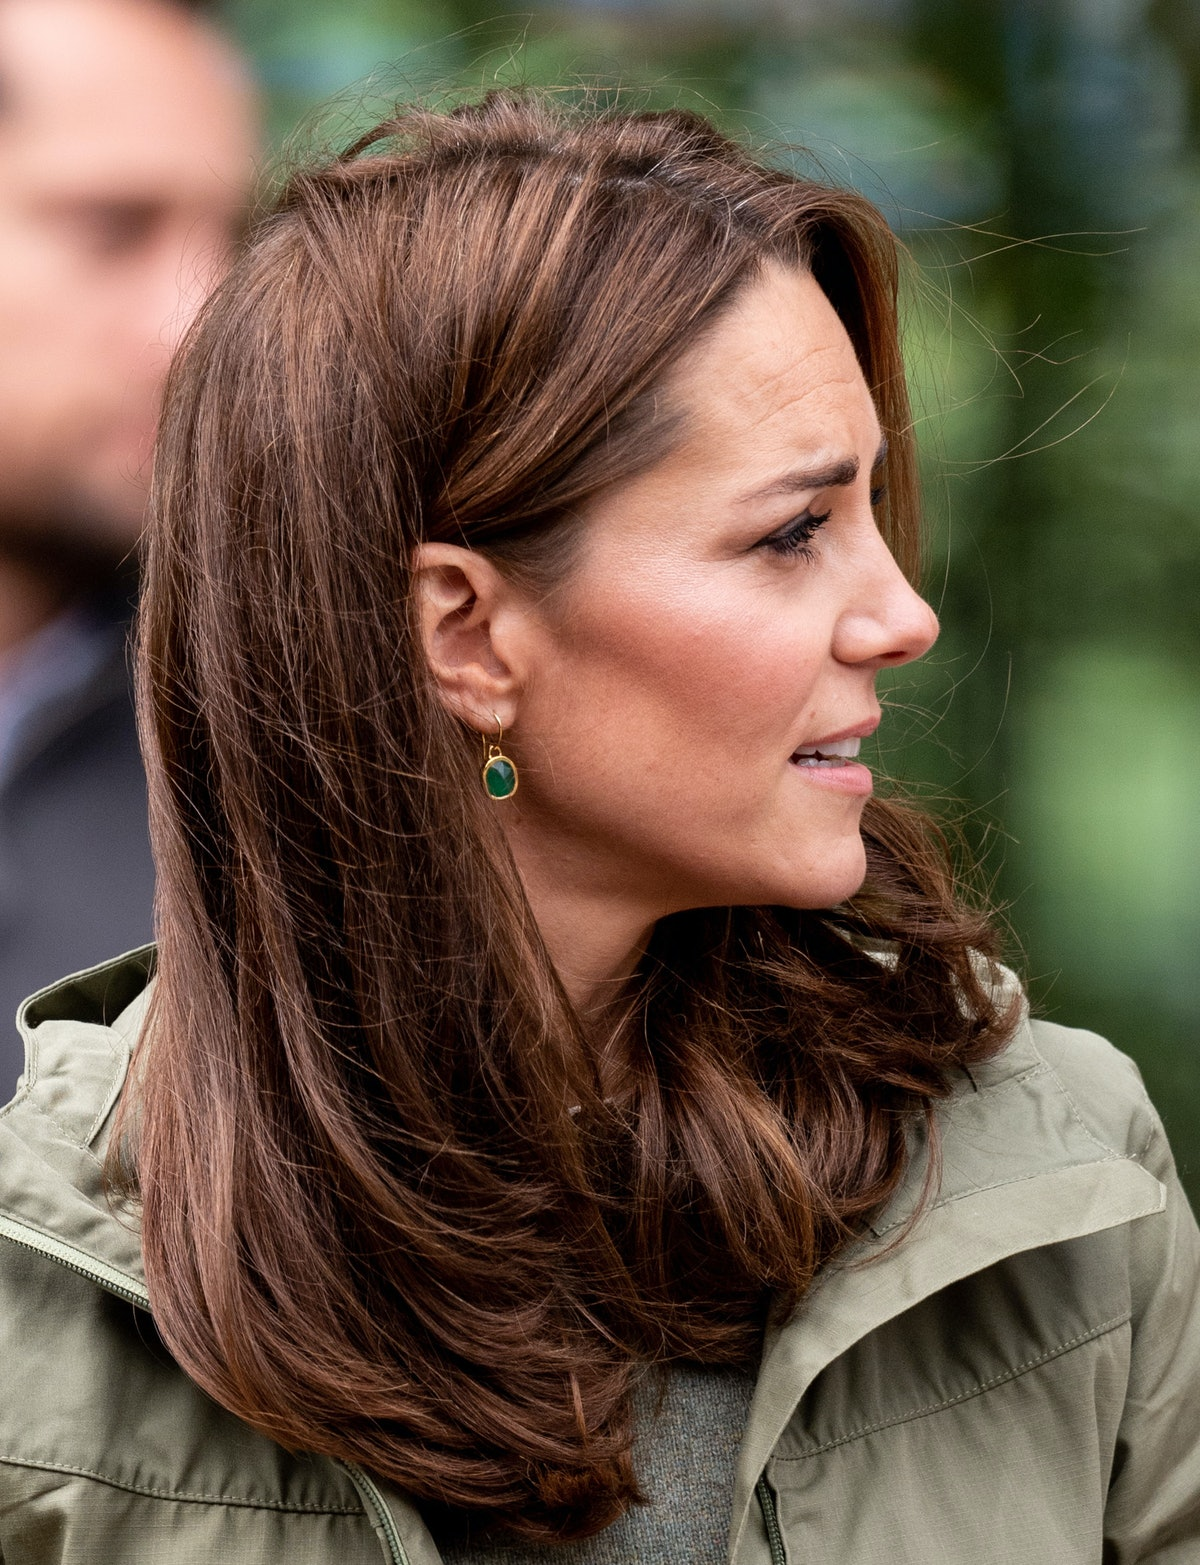 Kate Middleton Is Back from Maternity Leave 4